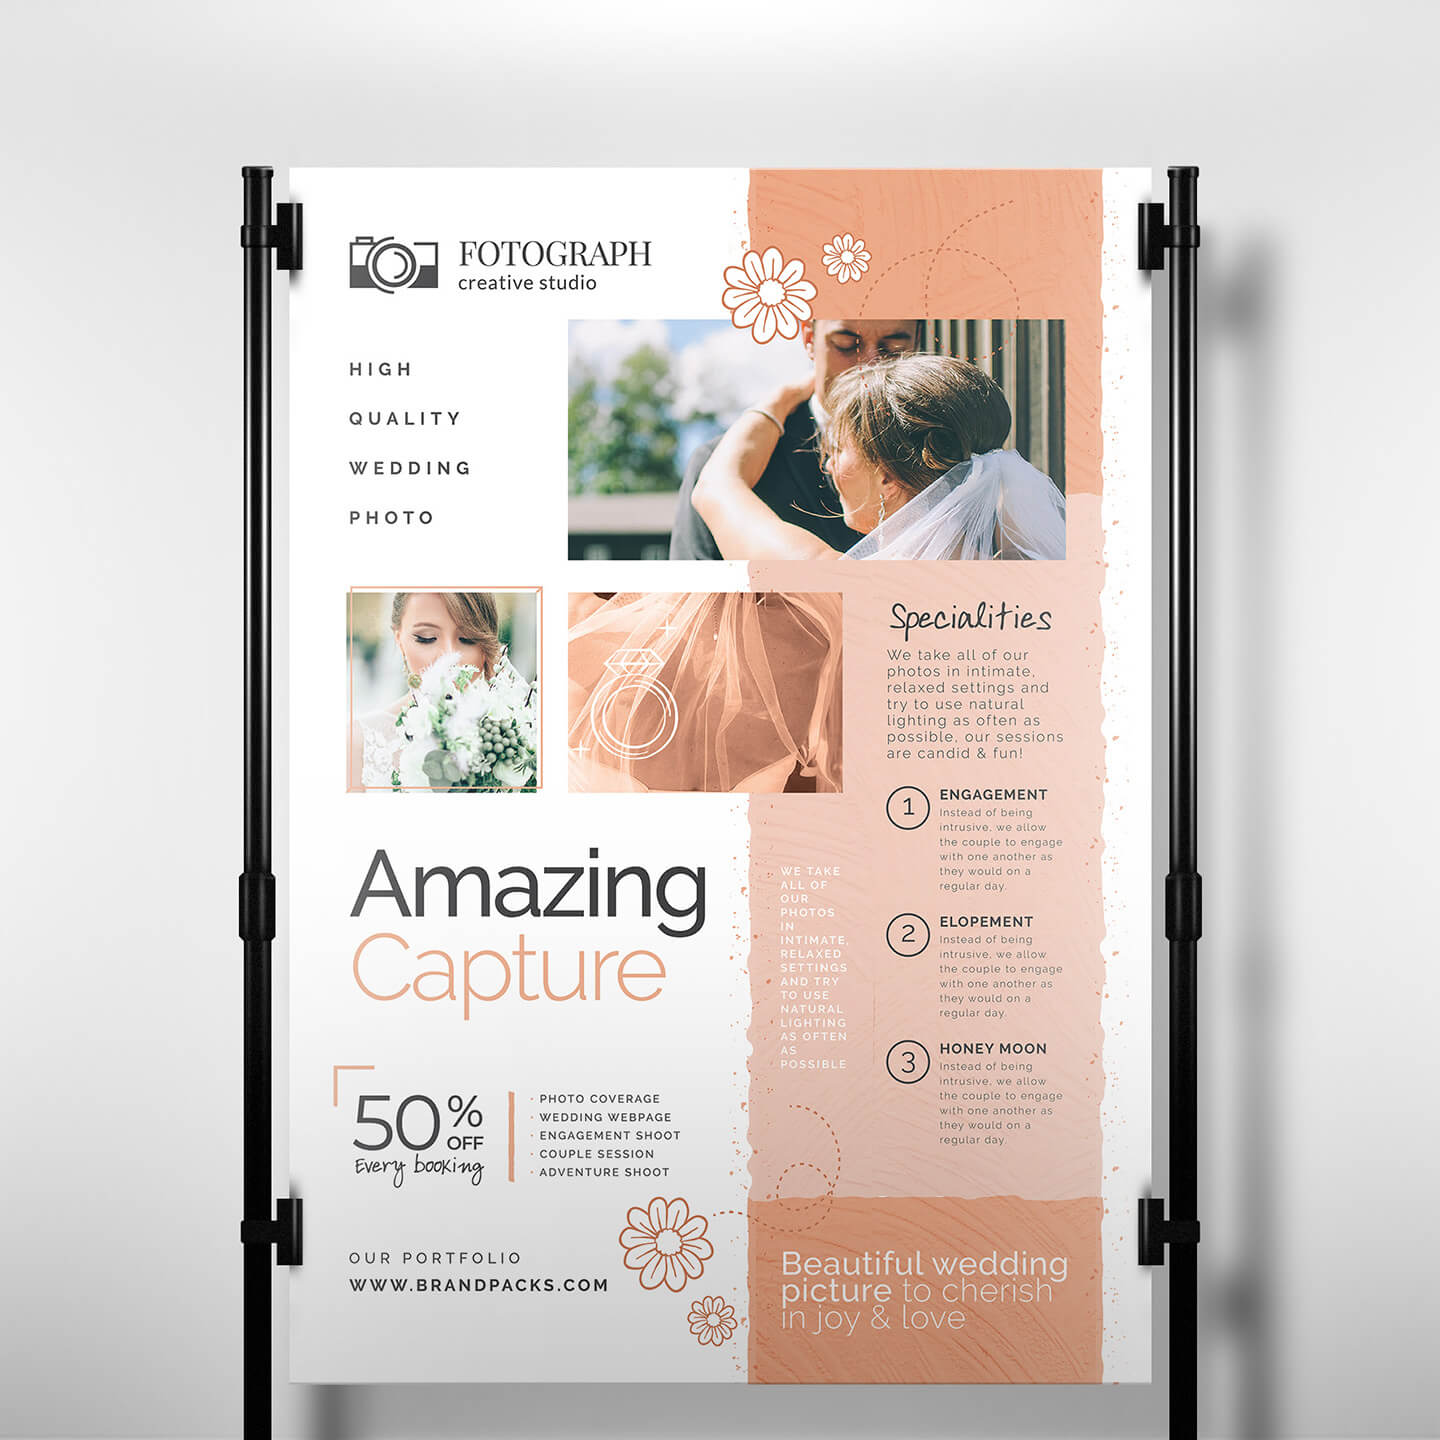 Photography Service Banner Template - Psd, Ai & Vector Pertaining To Photography Banner Template